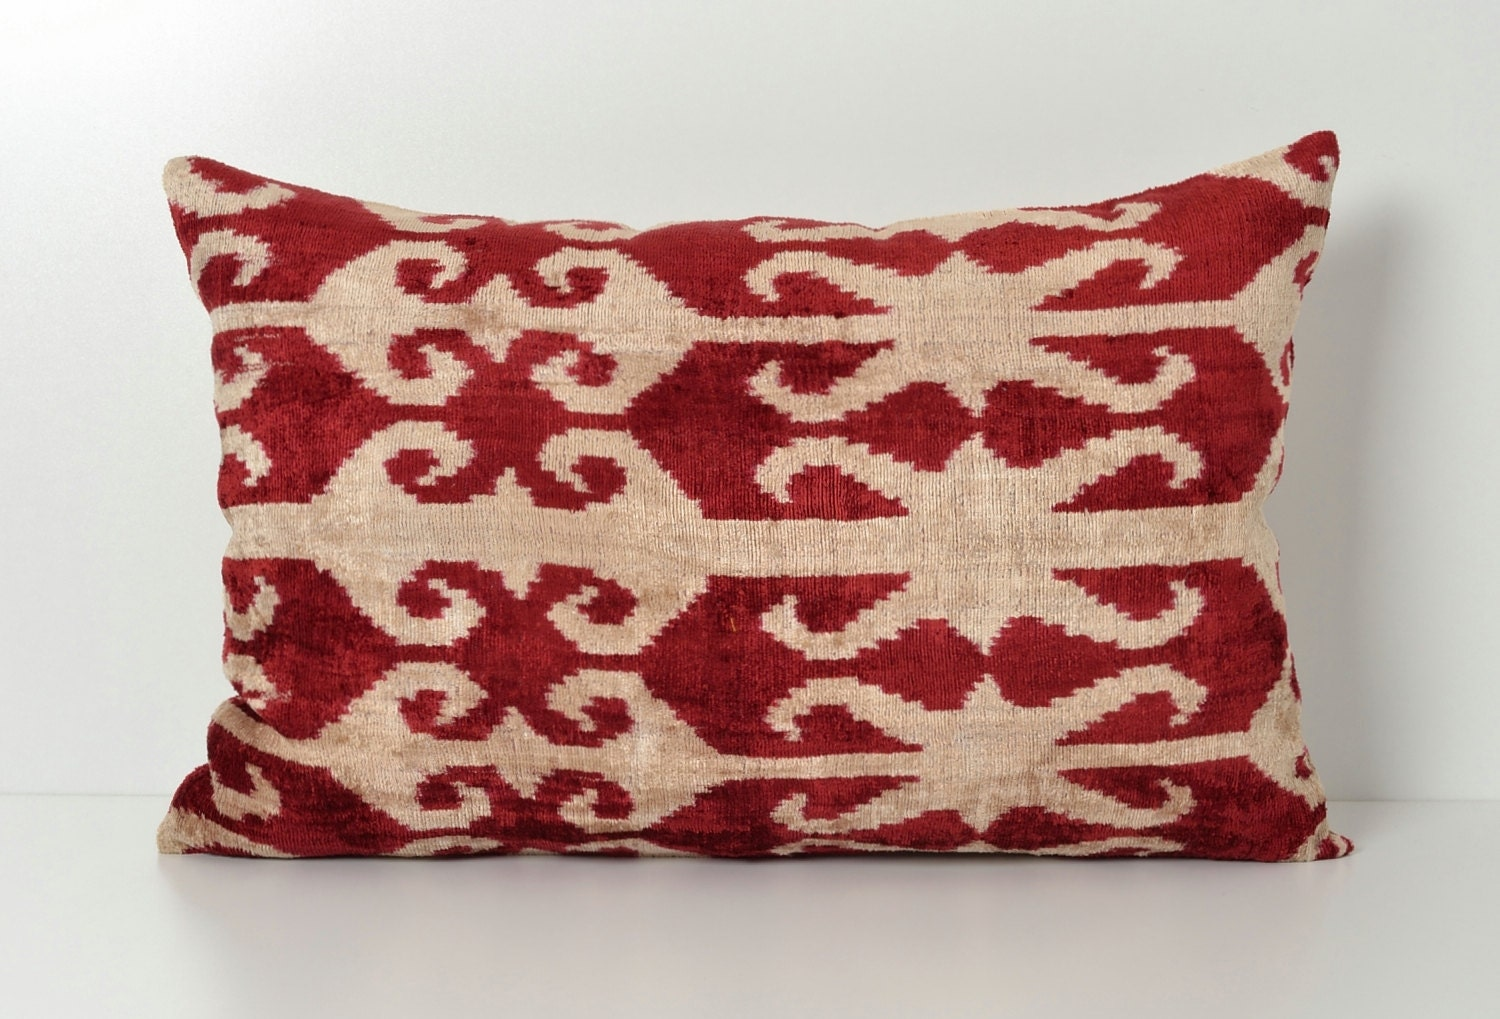 Throw Pillow Red : Red Ikat Pillow Ikat Lumbar Pillow Red Decorative Pillows